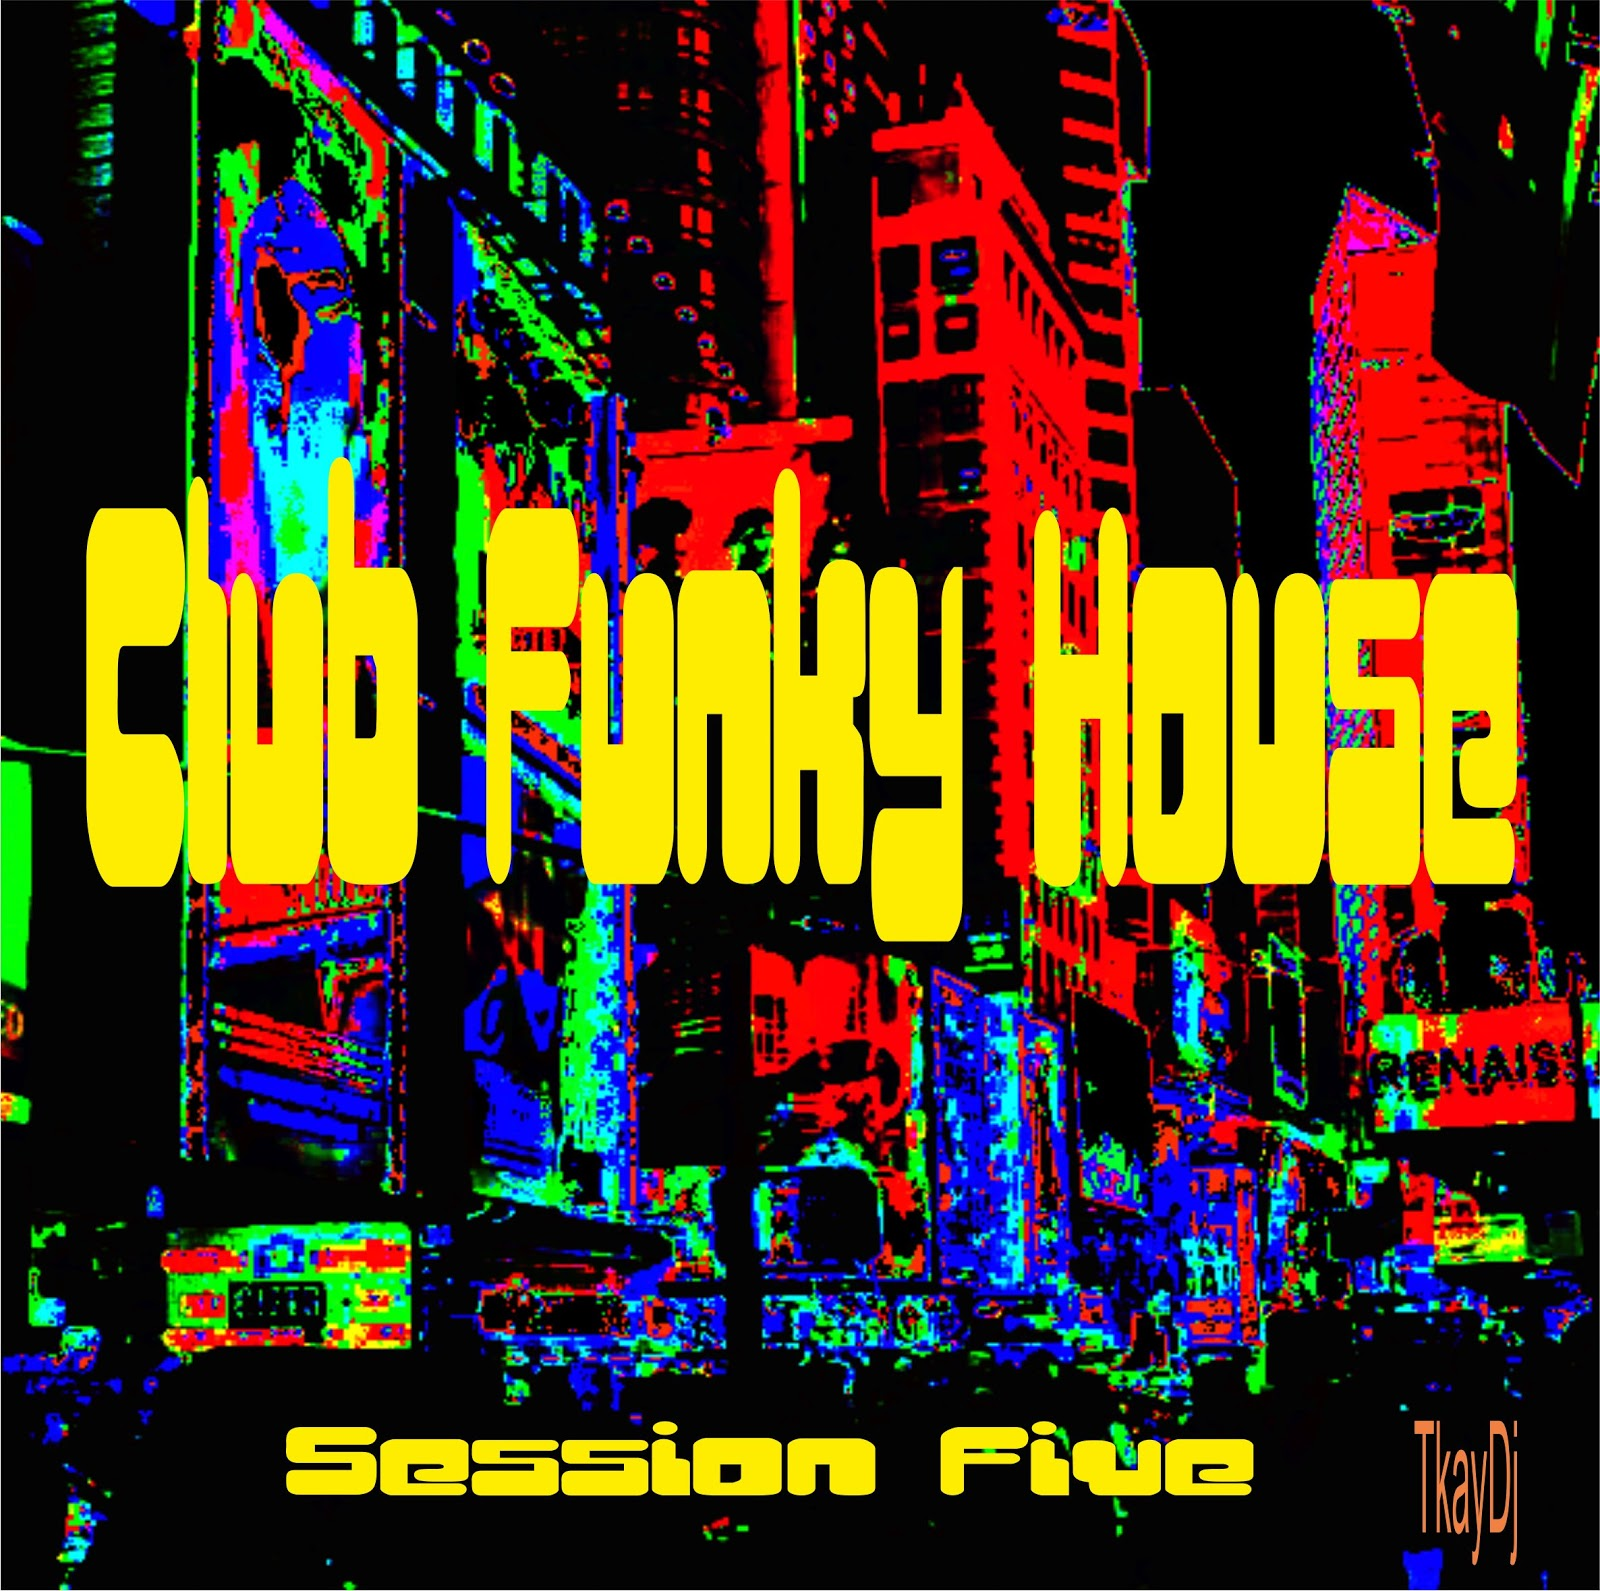 House of sound tkaydj club funky house session for Funky house music